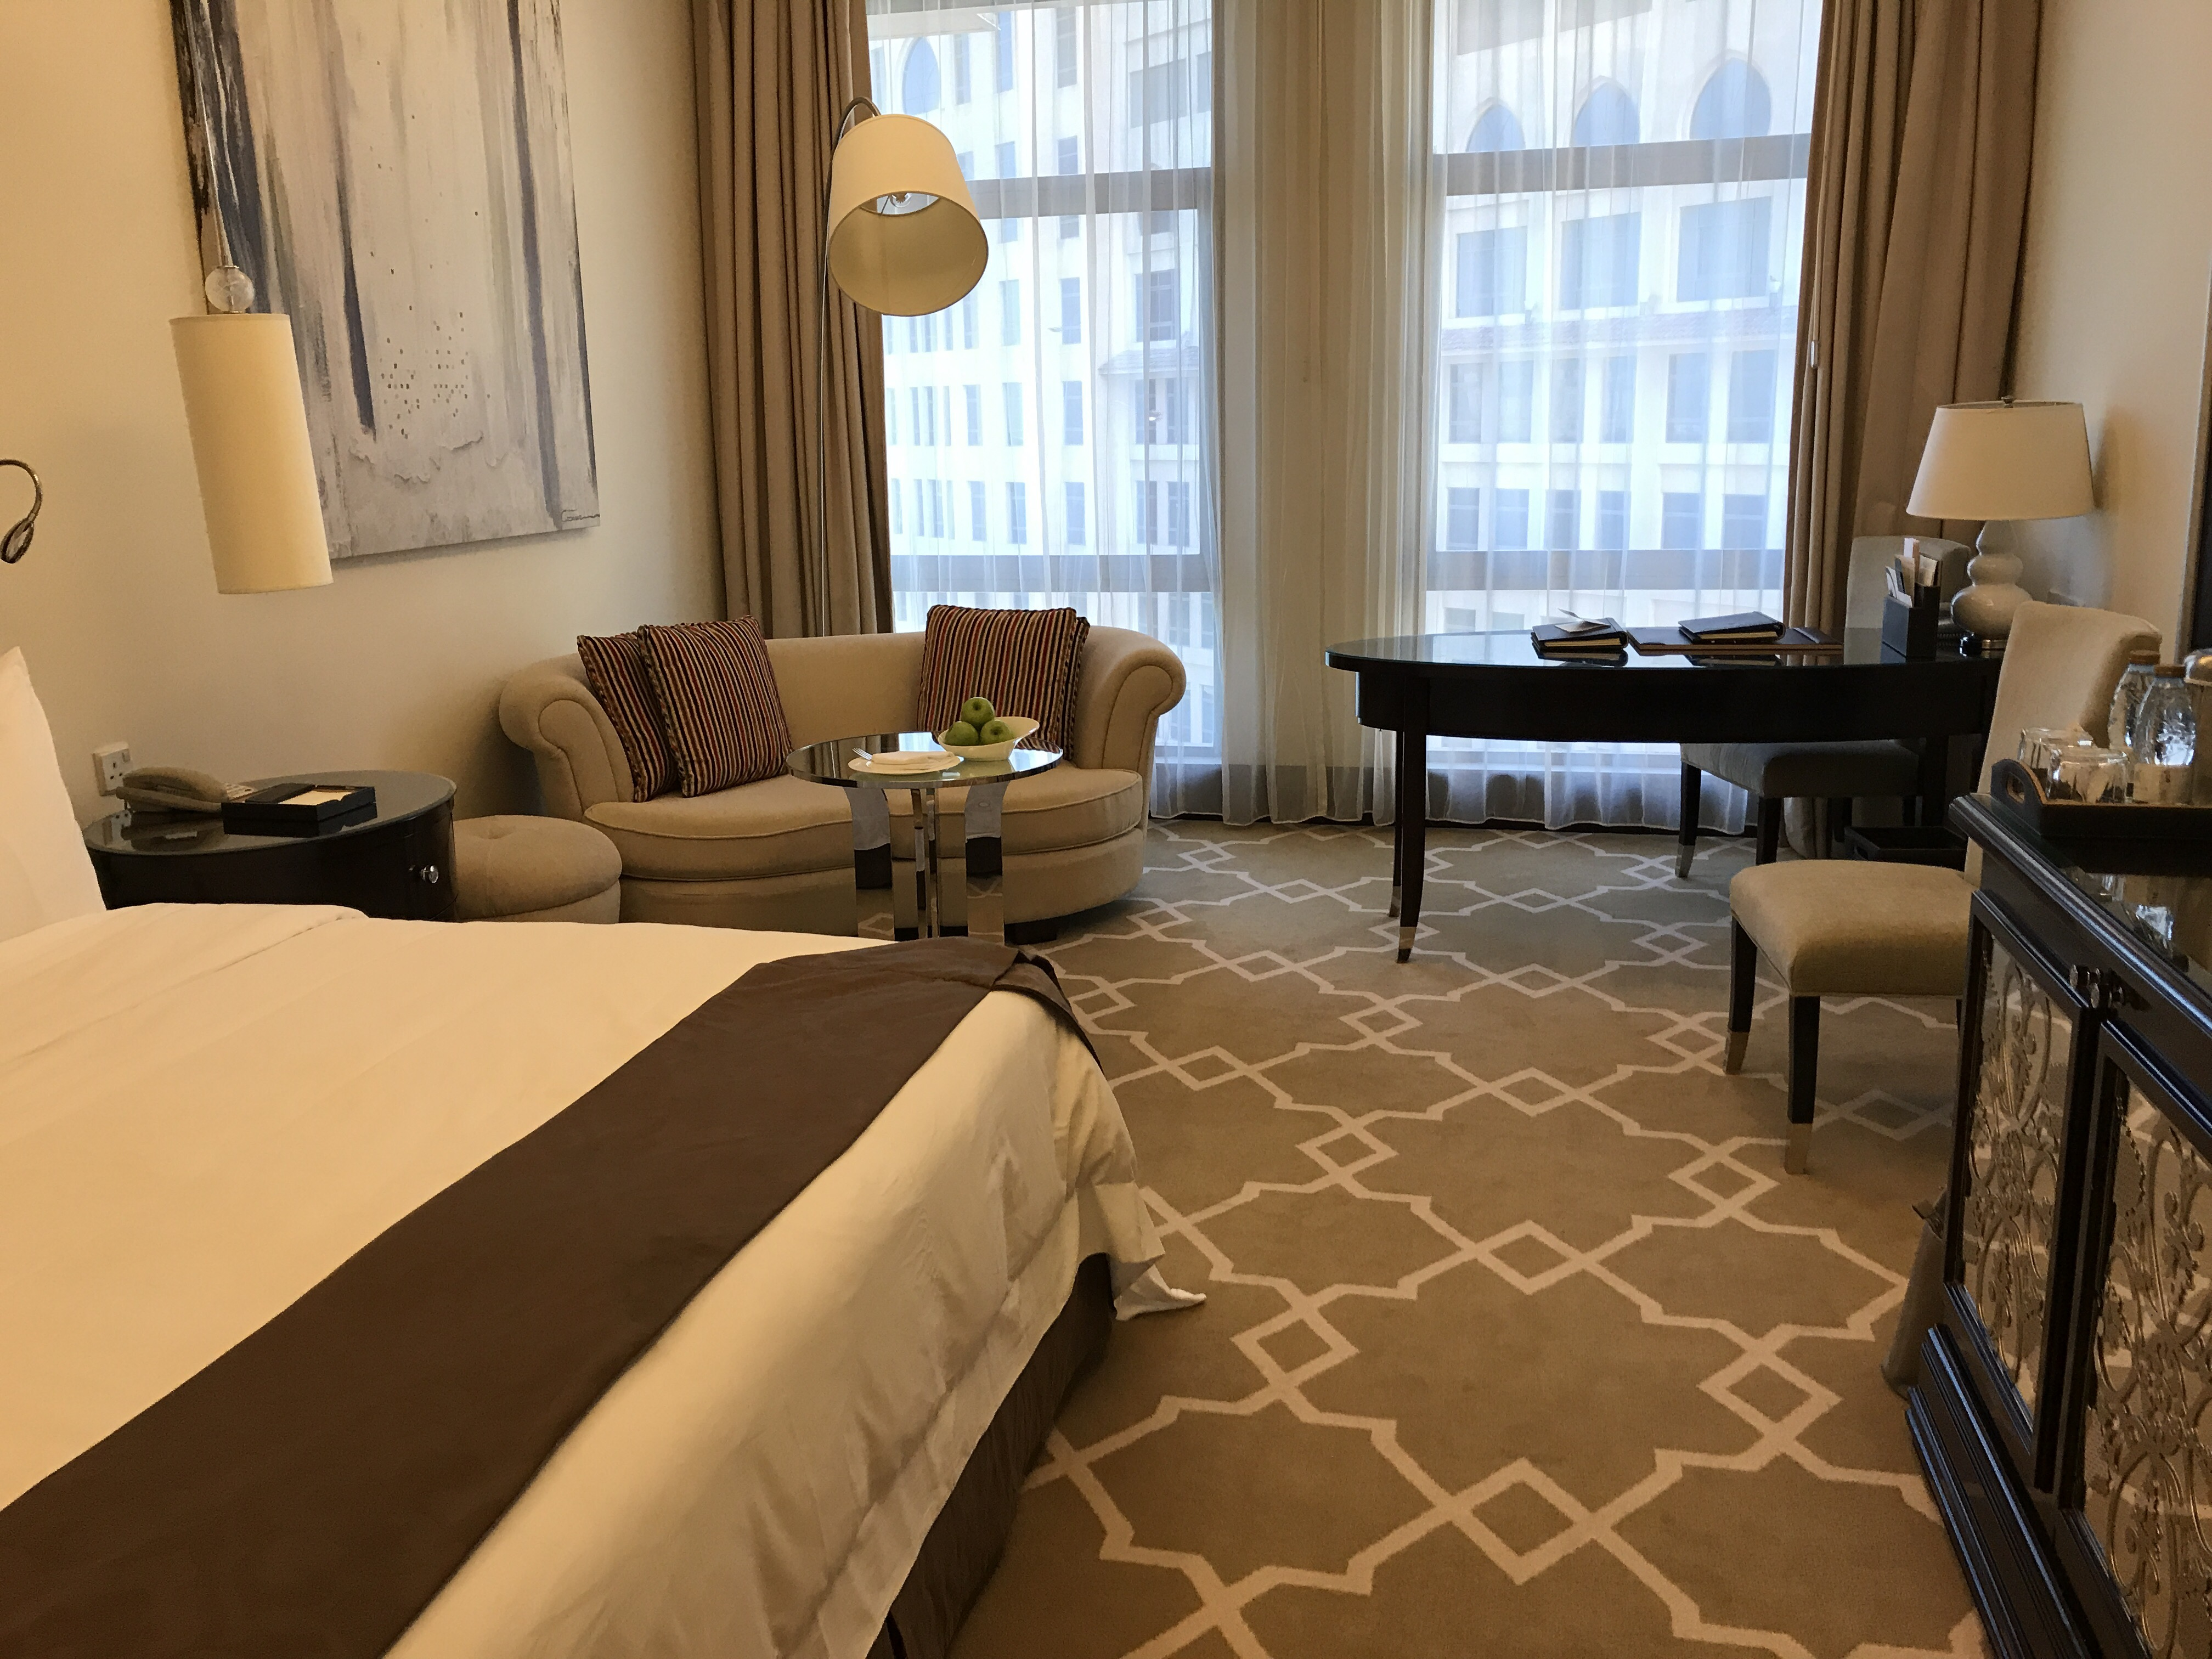 Adjoining rooms or suites are the best options if you can get them